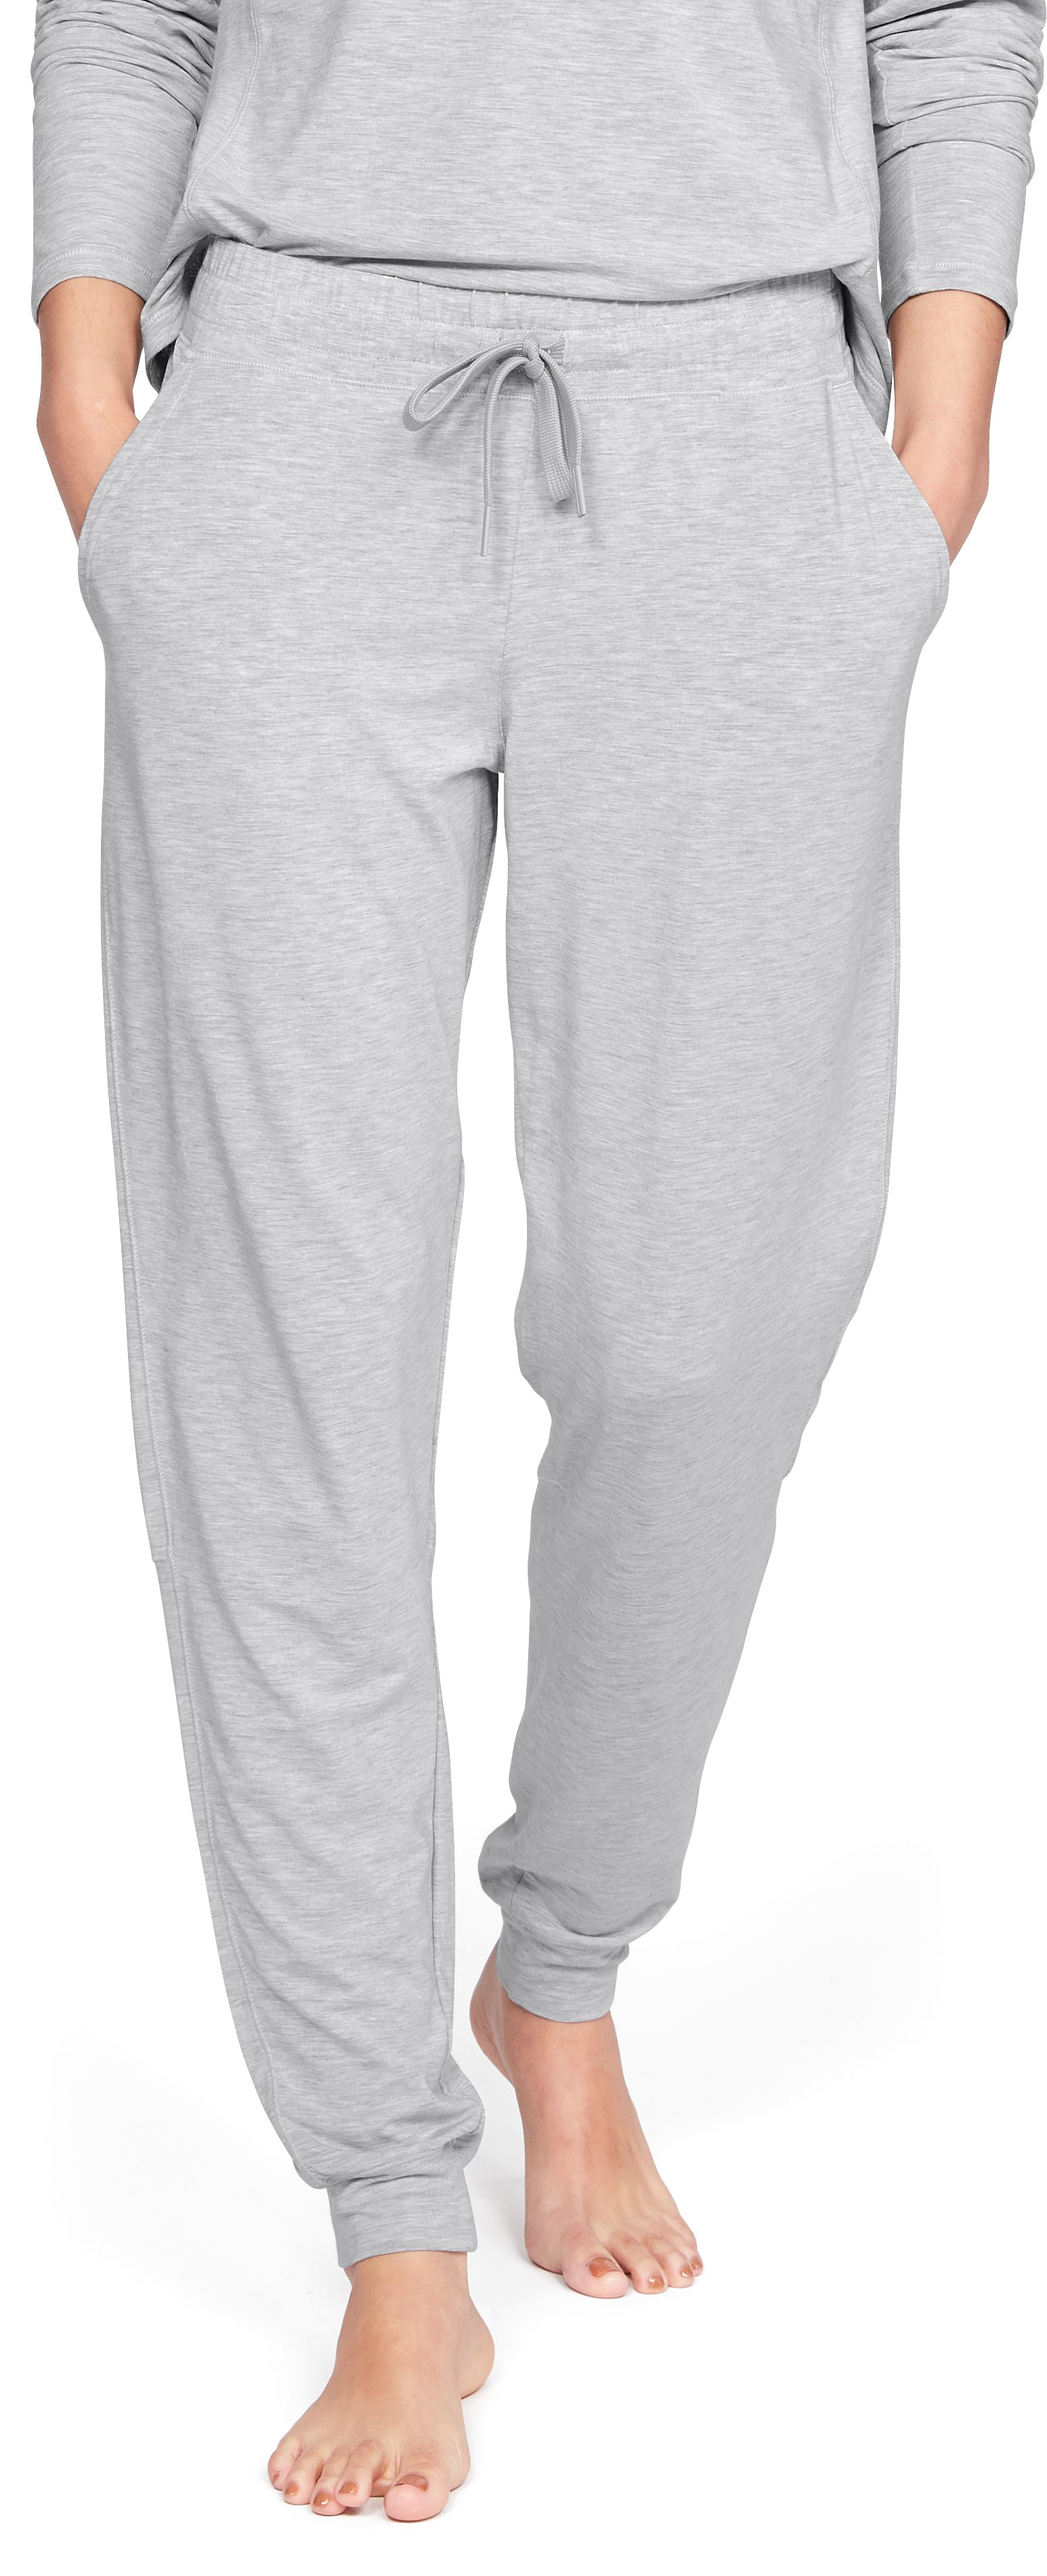 Women's Athlete Recovery Sleepwear™ Ultra Comfort Pants, ALUMINUM MEDIUM HEATHER